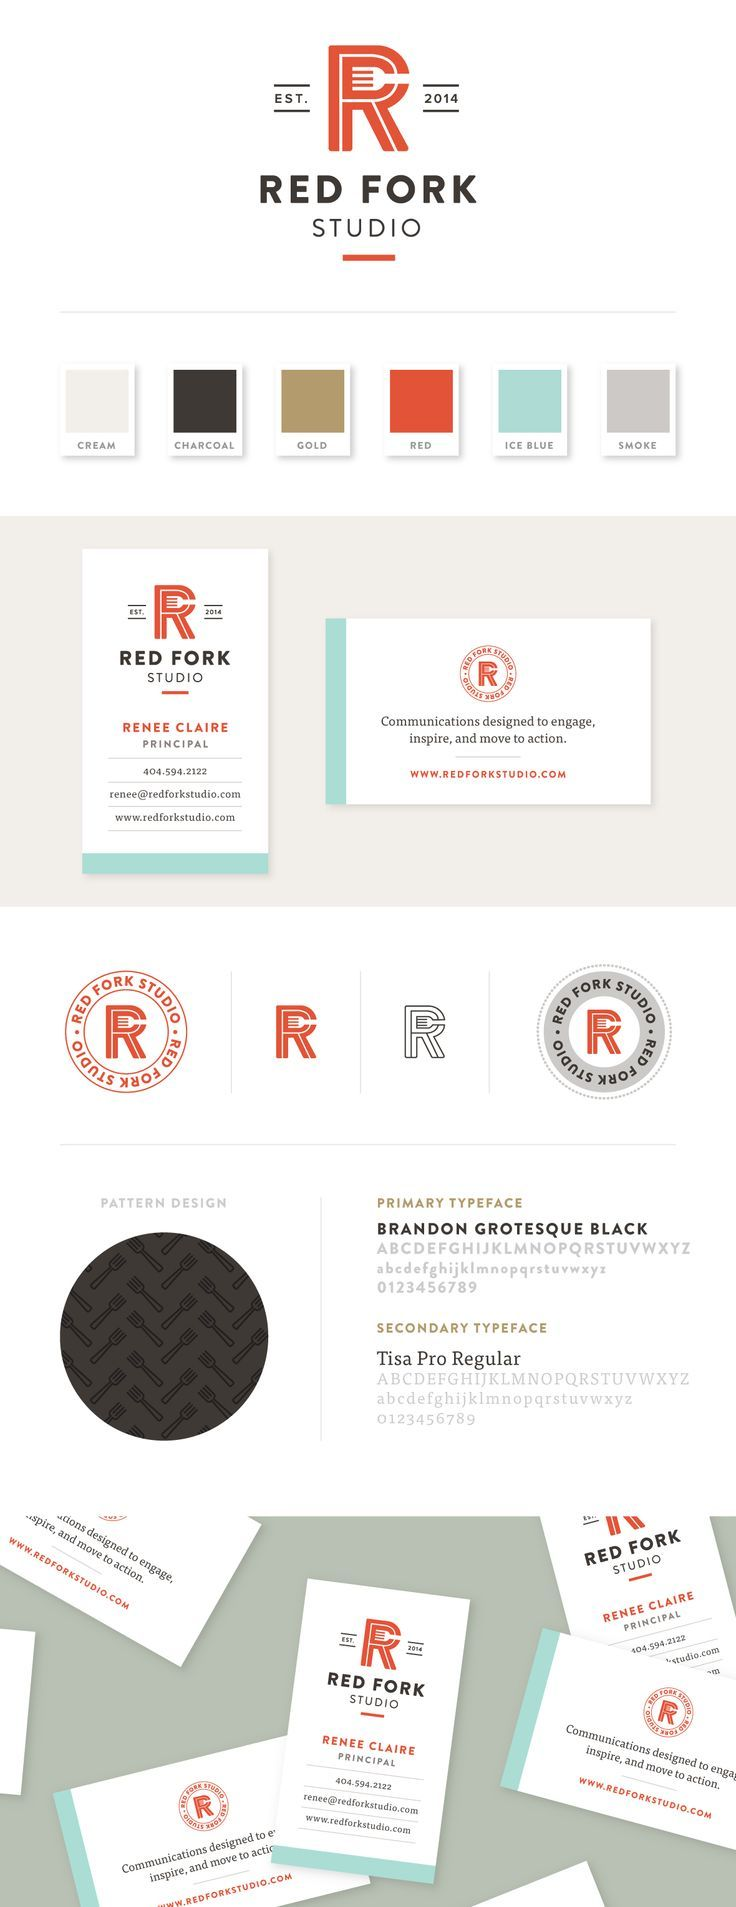 Red Fork Studio Graphic design branding, Identity design